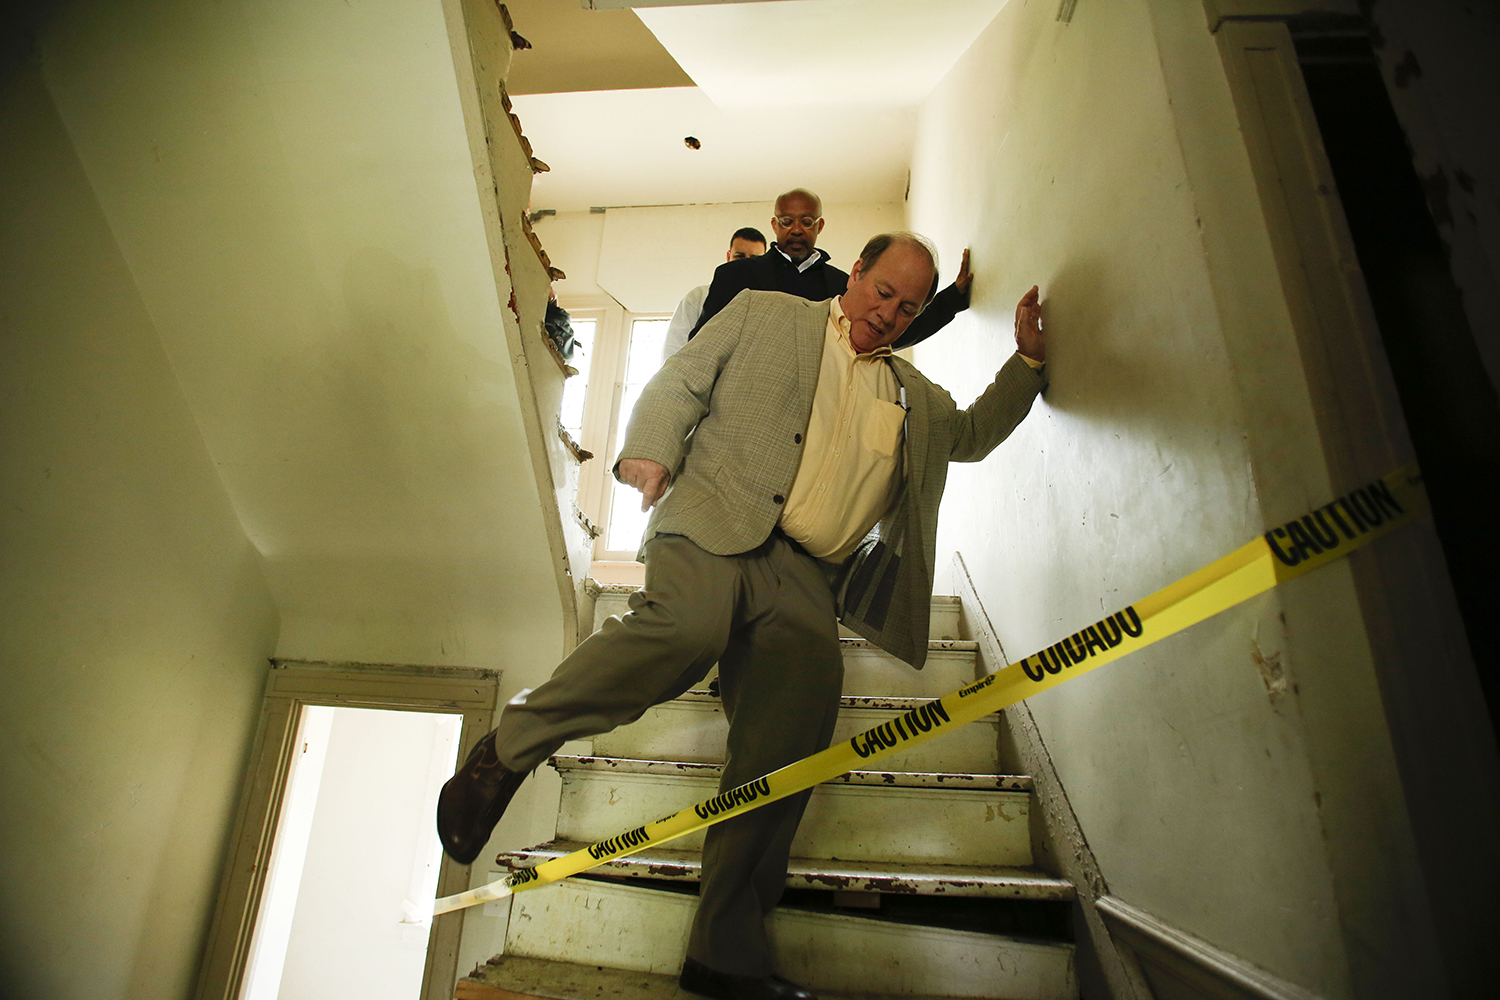 Mayor Mike Duggan steps over caution tape in a home on the Boston Edison Auction Tour on Sat., May 17, 2014 in Detroit. Many of the homes had areas restricted by caution tape and the tour required the signing of a waiver due to potentially dangerous areas in the houses. Tim Galloway/Special to DFP